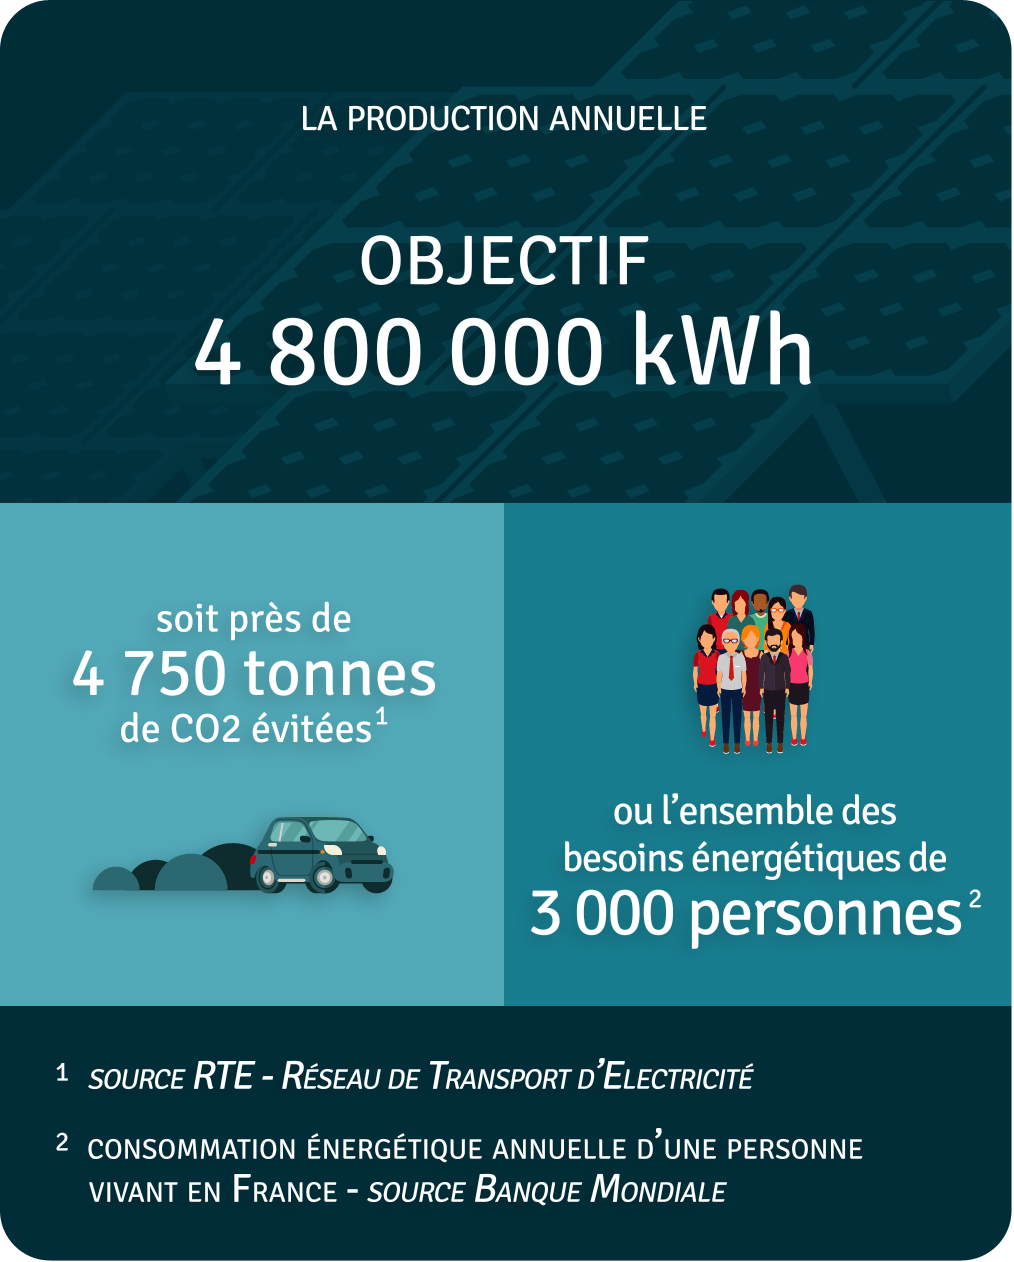 Production annuelle 4 800 000 kWh